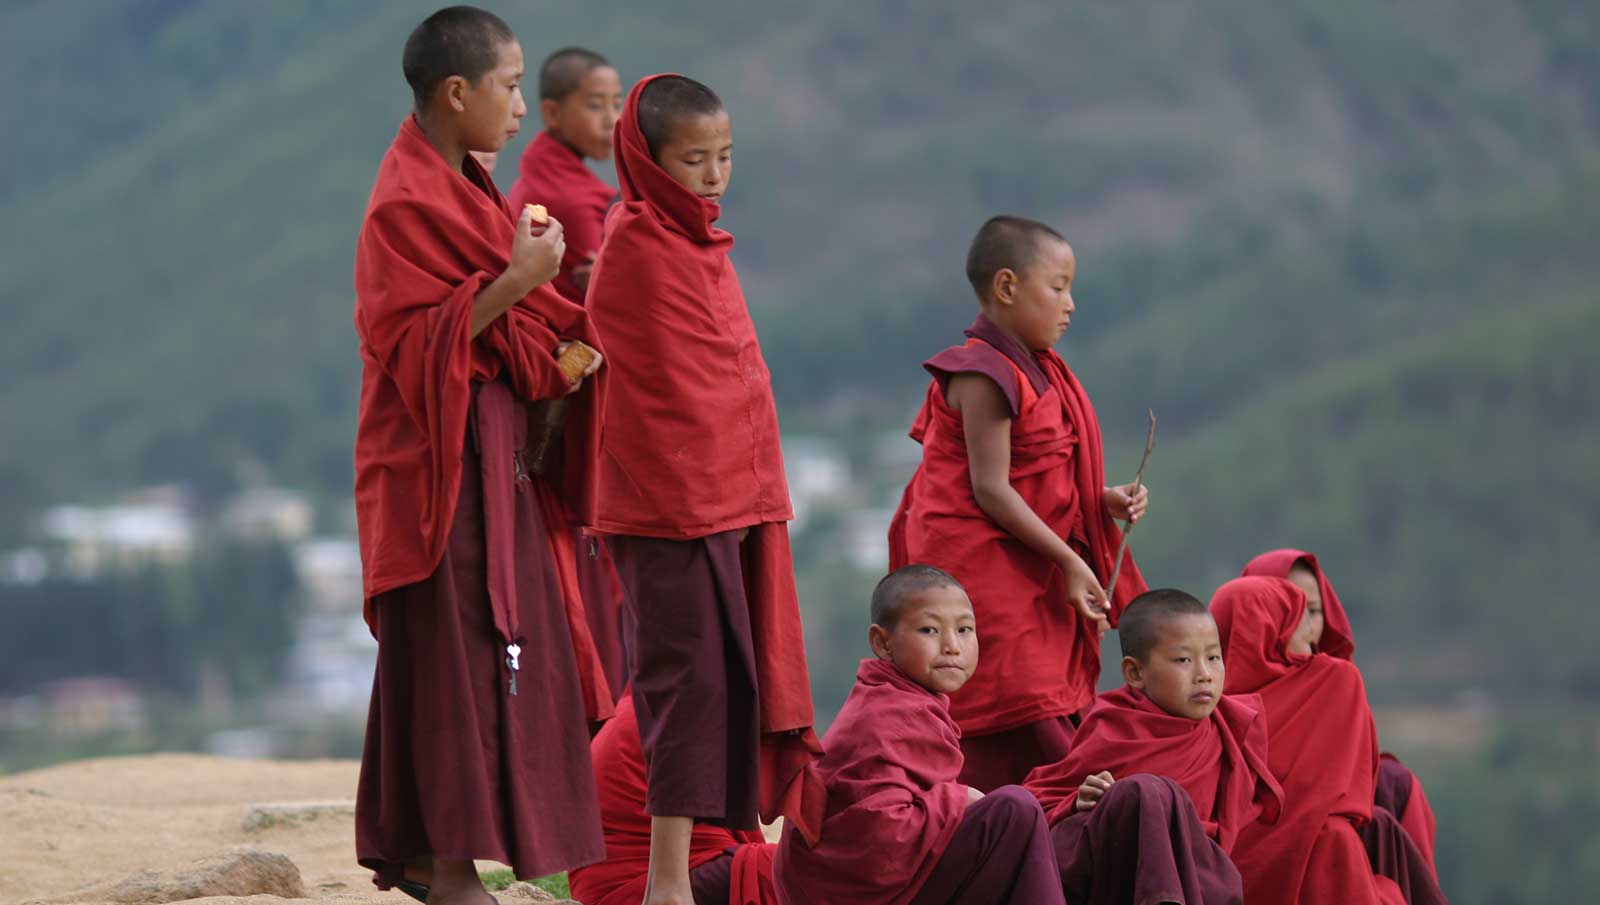 himalayan buddhist culture school - HD 1280×853